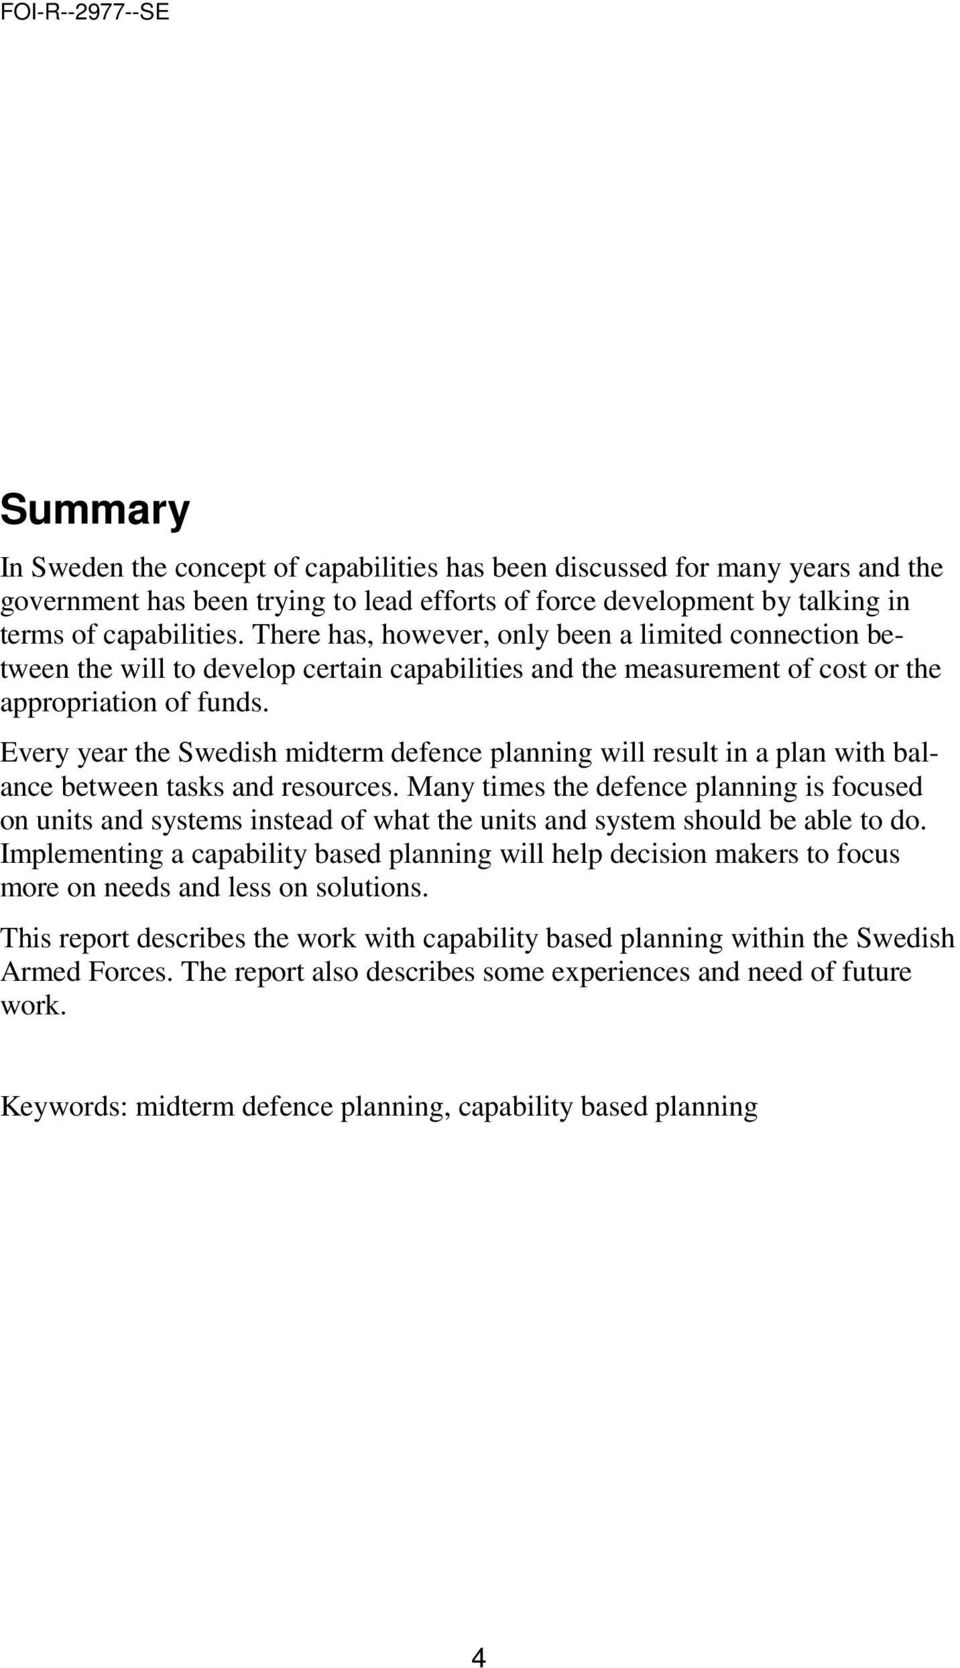 Every year the Swedish midterm defence planning will result in a plan with balance between tasks and resources.